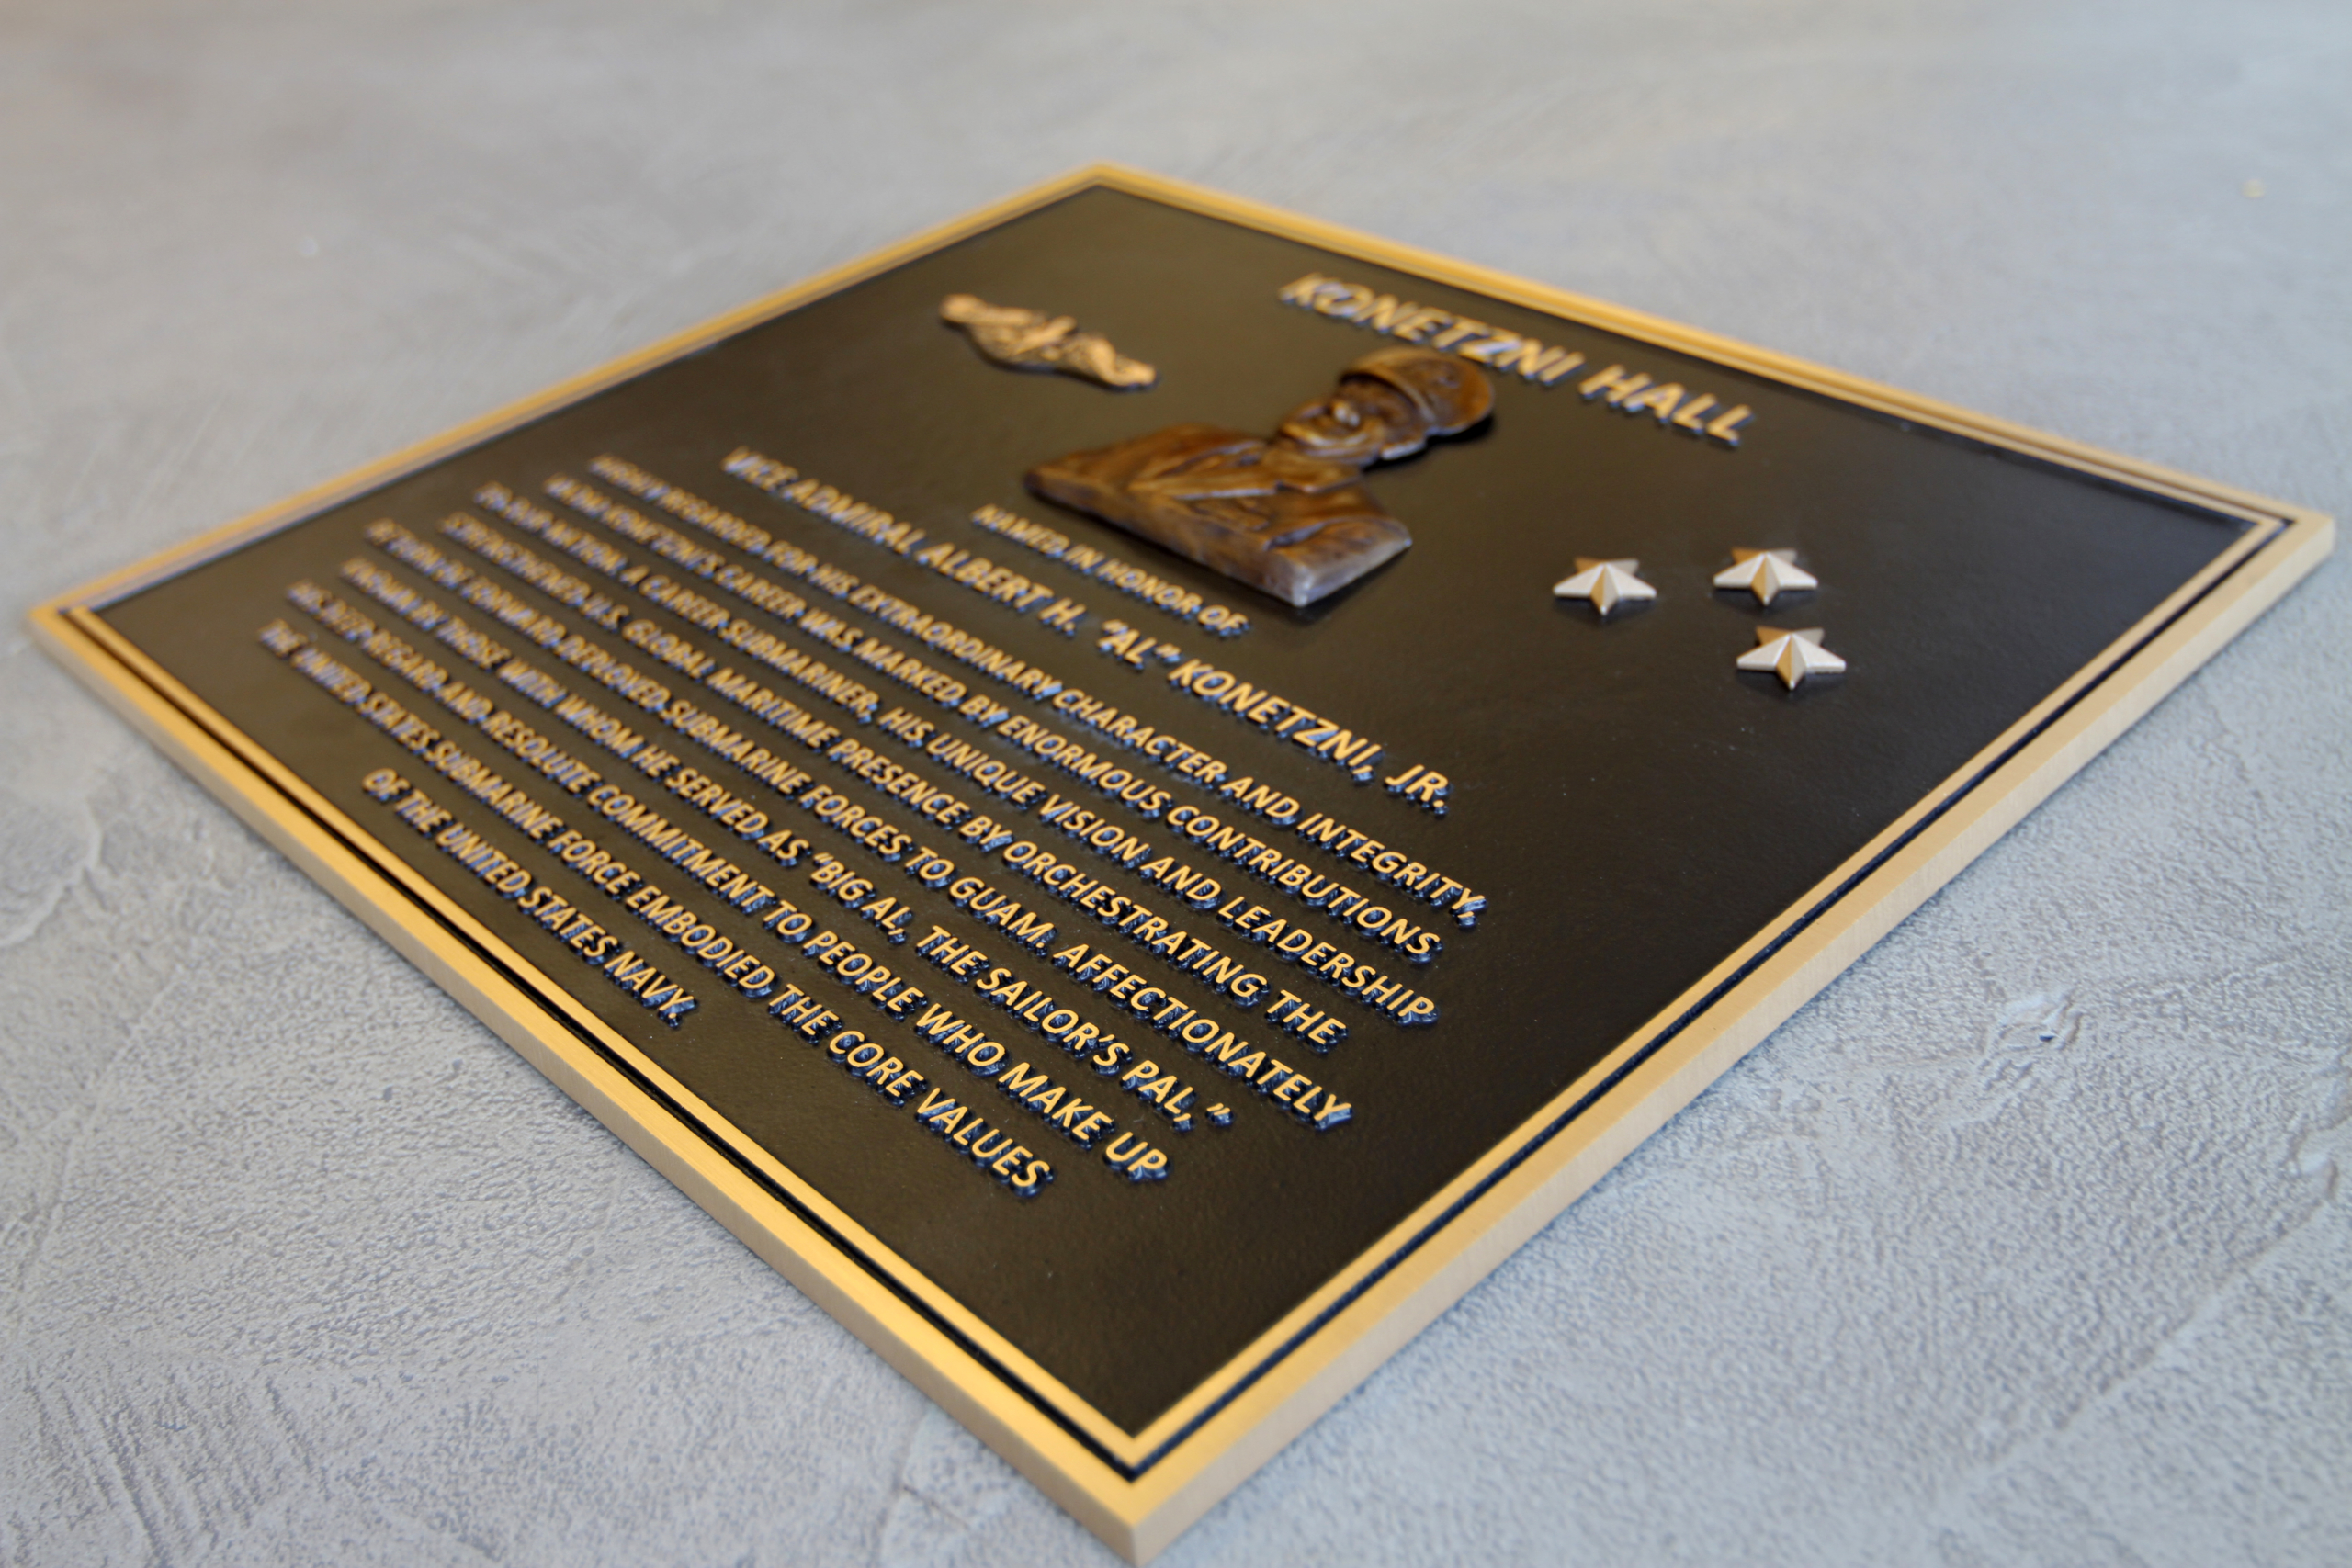 A placard memorializing a person who served in the Navy.